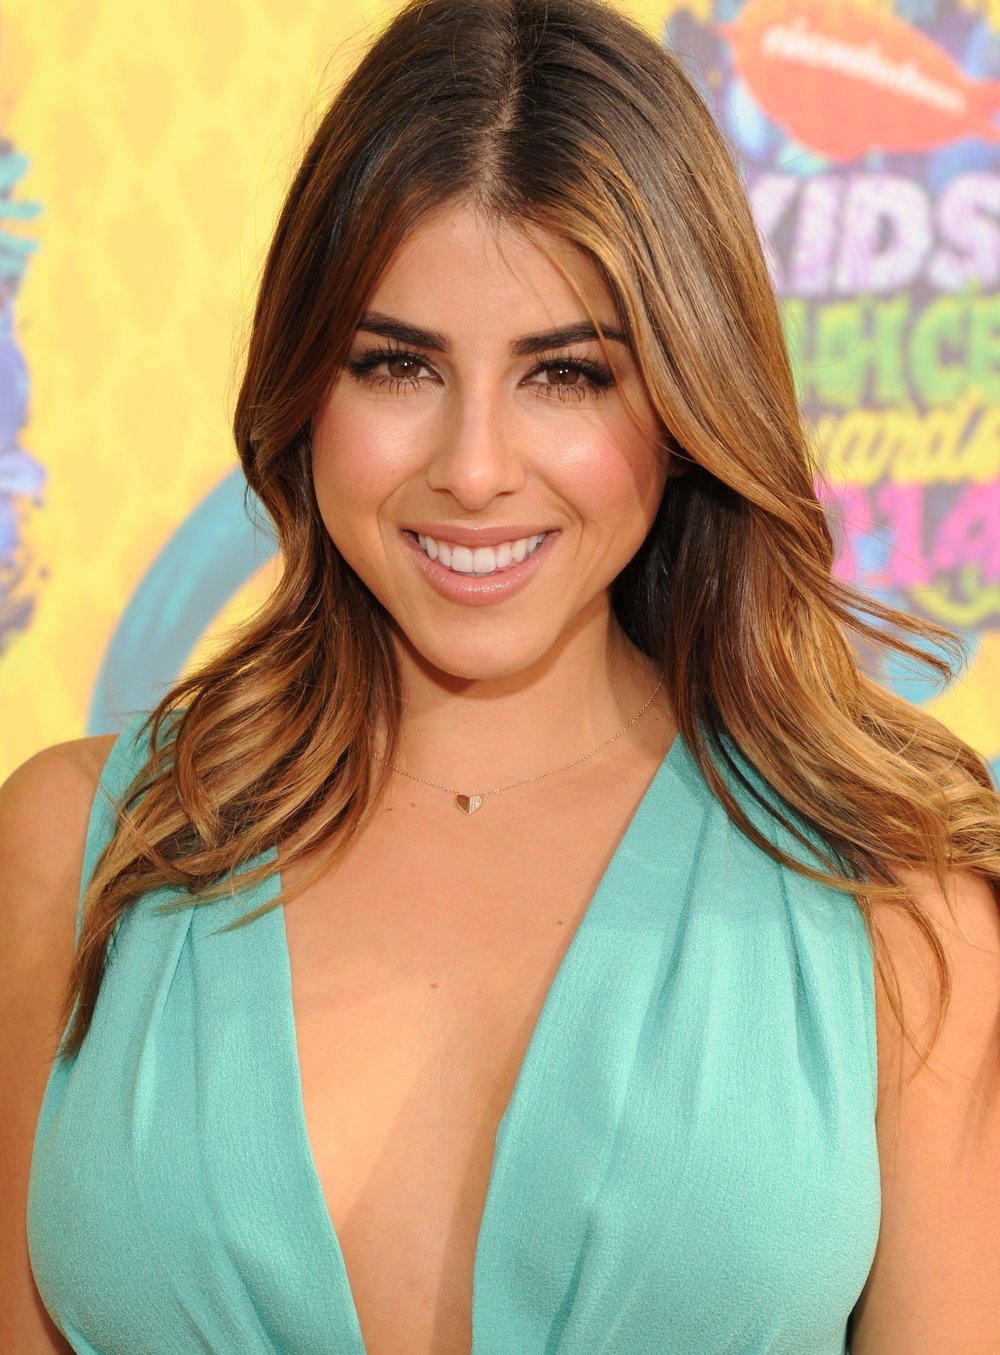 daniella-monet-victorious-movie.jpg